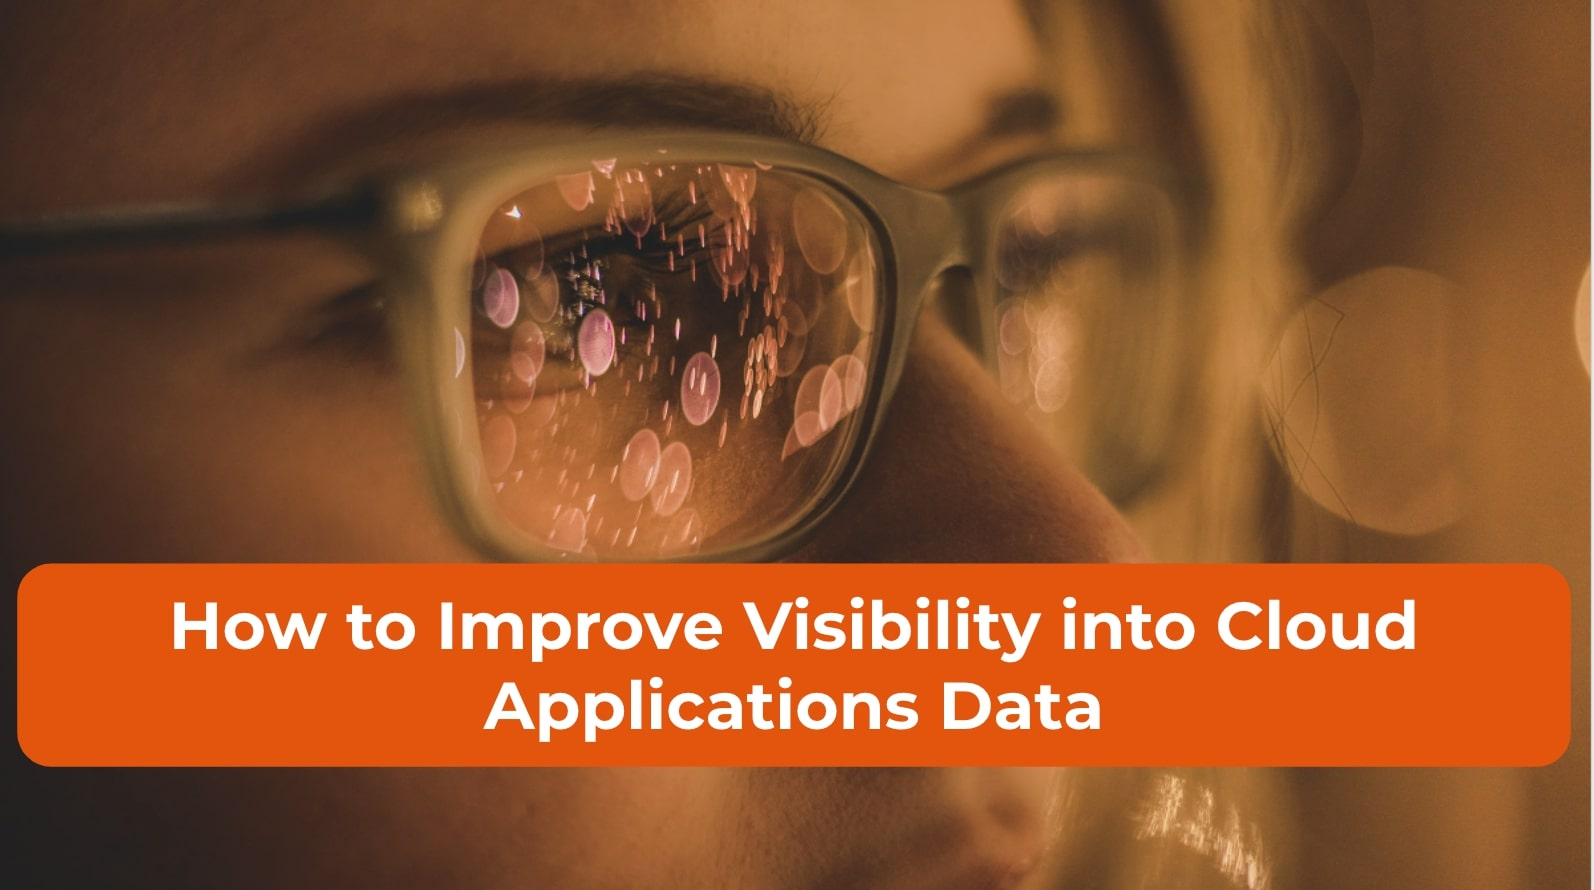 How to Improve Visibility into Cloud Applications Data